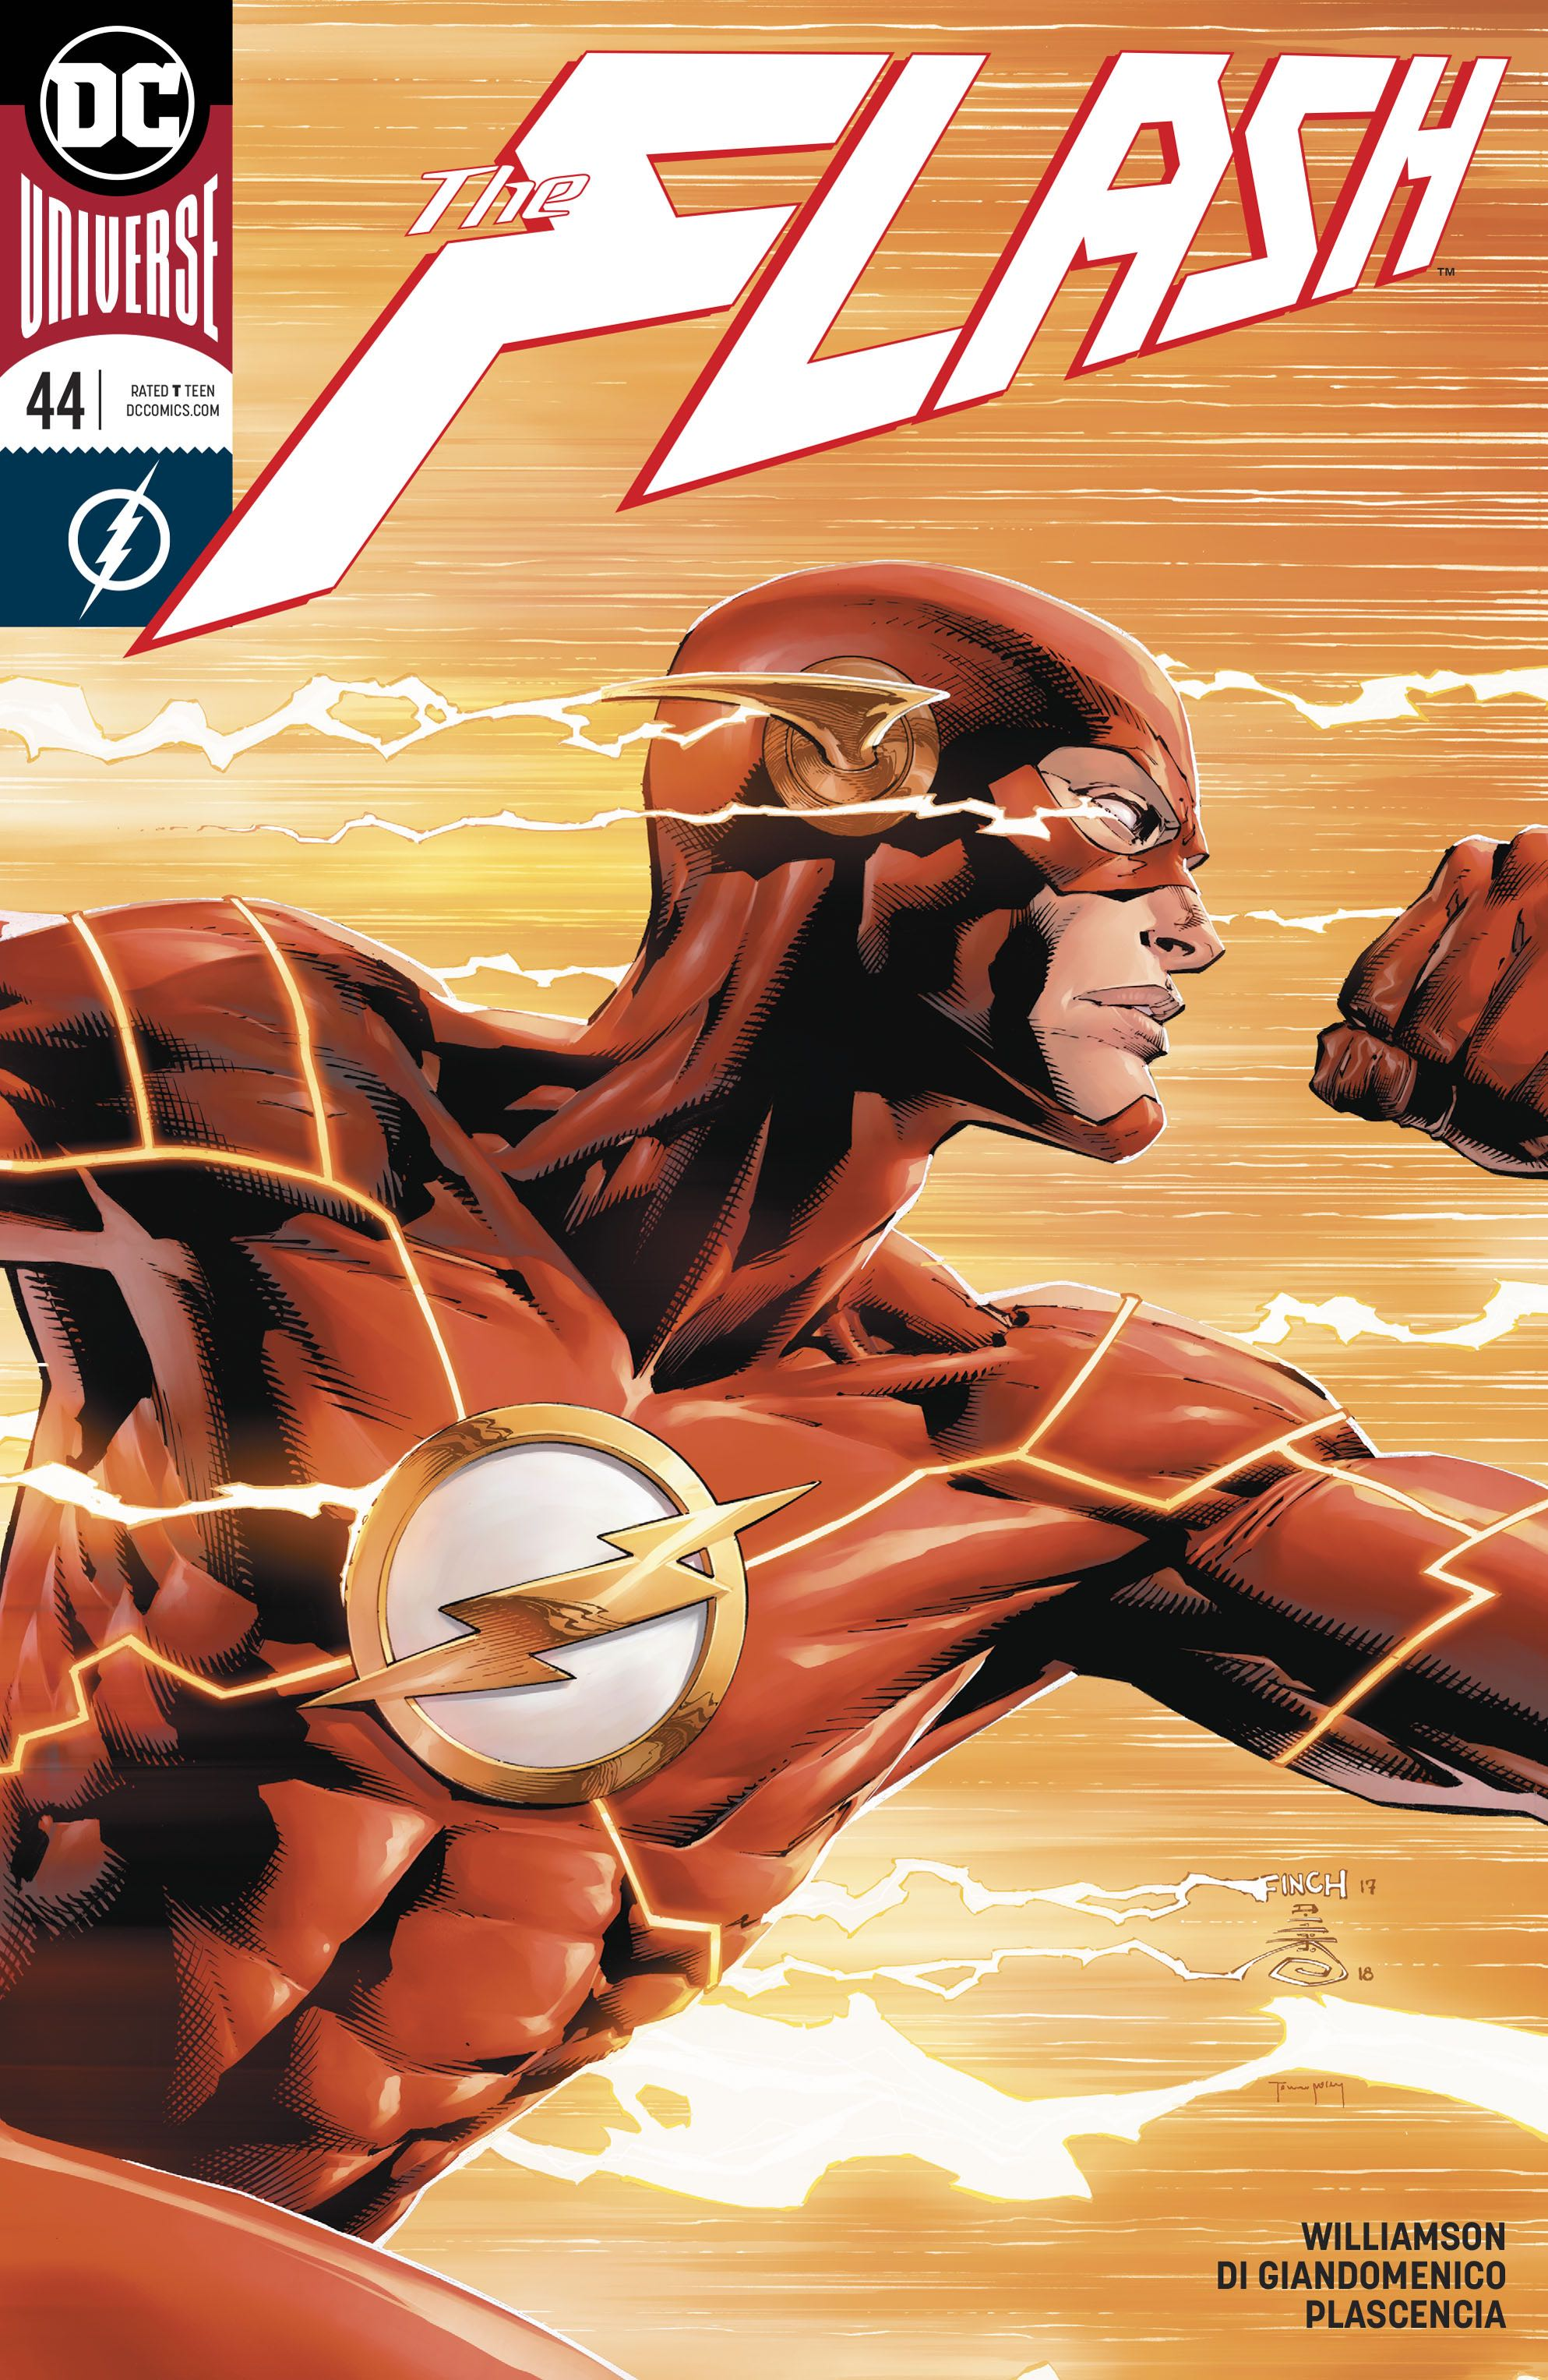 Episode 29 Variant of the Week! - (DC) The Flash #44 (Variant)Cover by David Finch and Danny MikiWritten by Joshua WiiiamsonIllustrated by Carmine Di GiandomeniioDid the Content Match the Drapes? - UNR